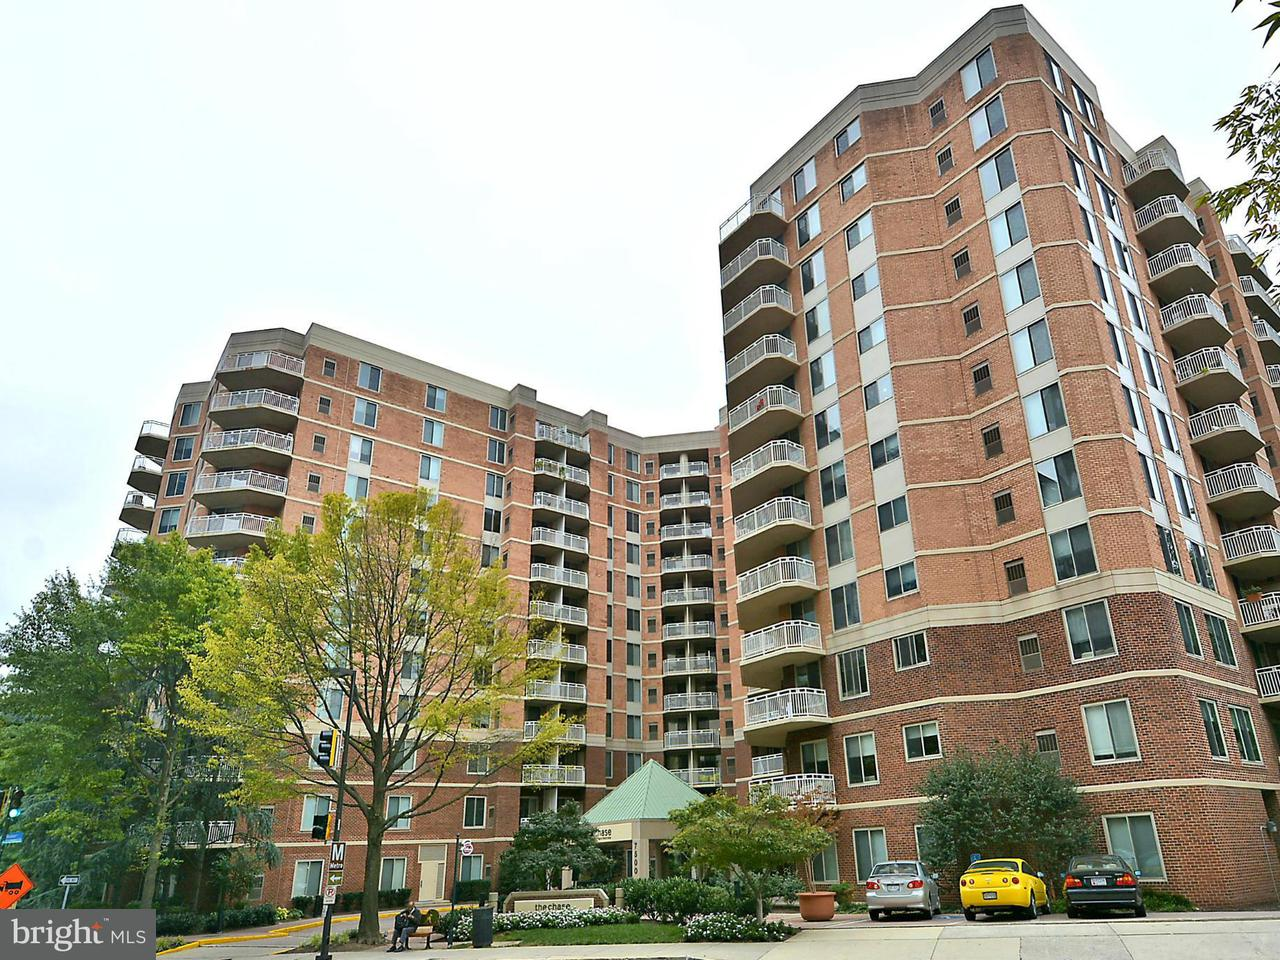 Condominium for Sale at 7500 Woodmont Ave #S1015 7500 Woodmont Ave #S1015 Bethesda, Maryland 20814 United States